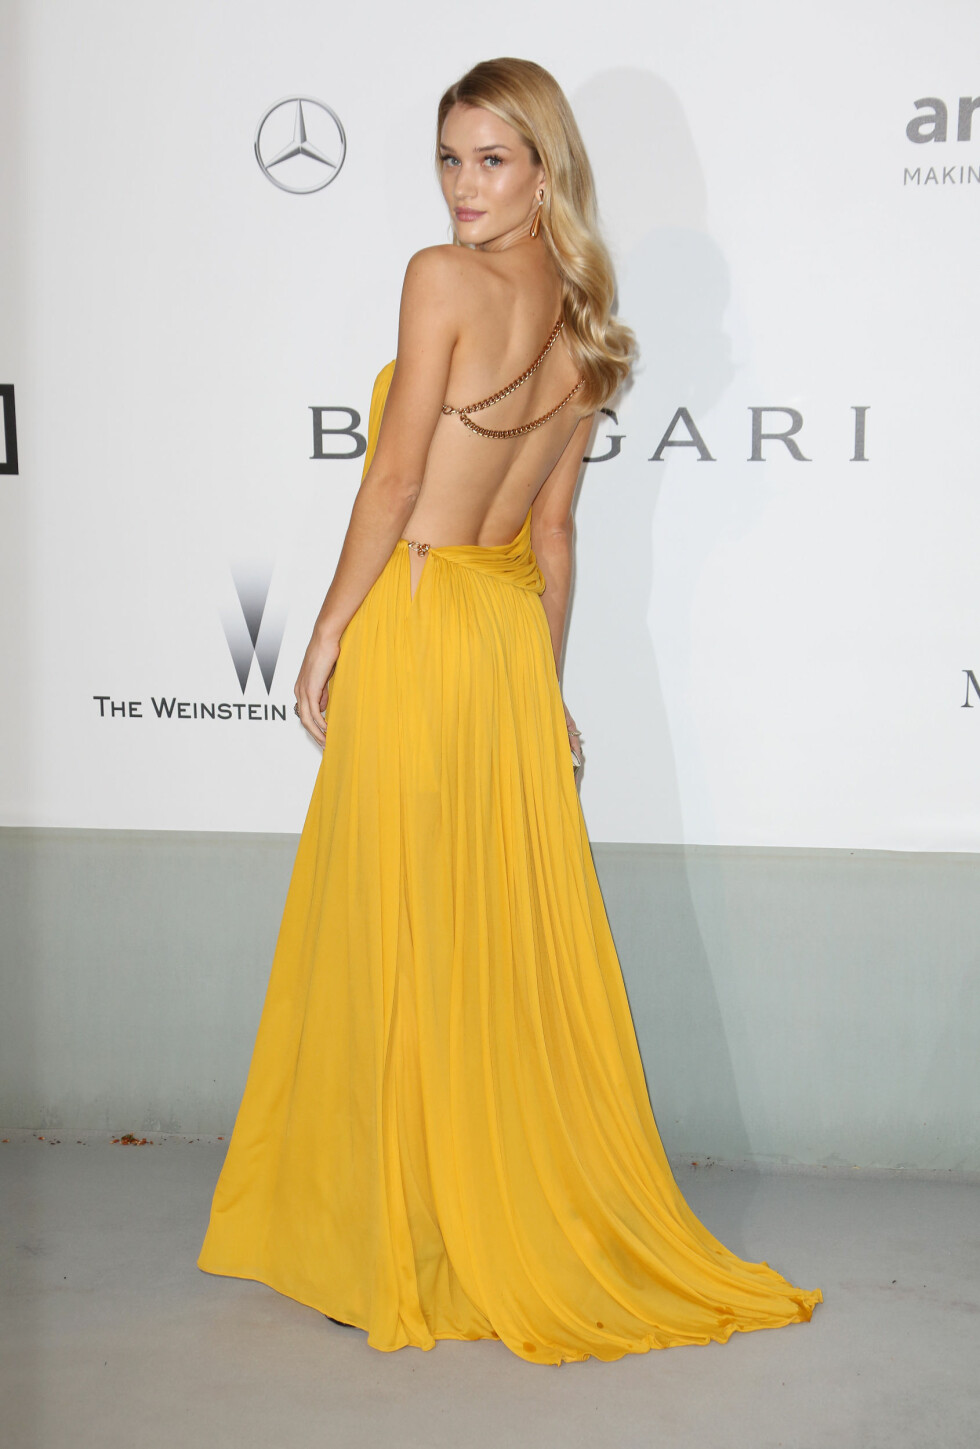 Rosie Huntington-Whiteley i en kjole fra Emilio Pucci.   Foto: REX/Matt Baron/BEI/All Over Pres